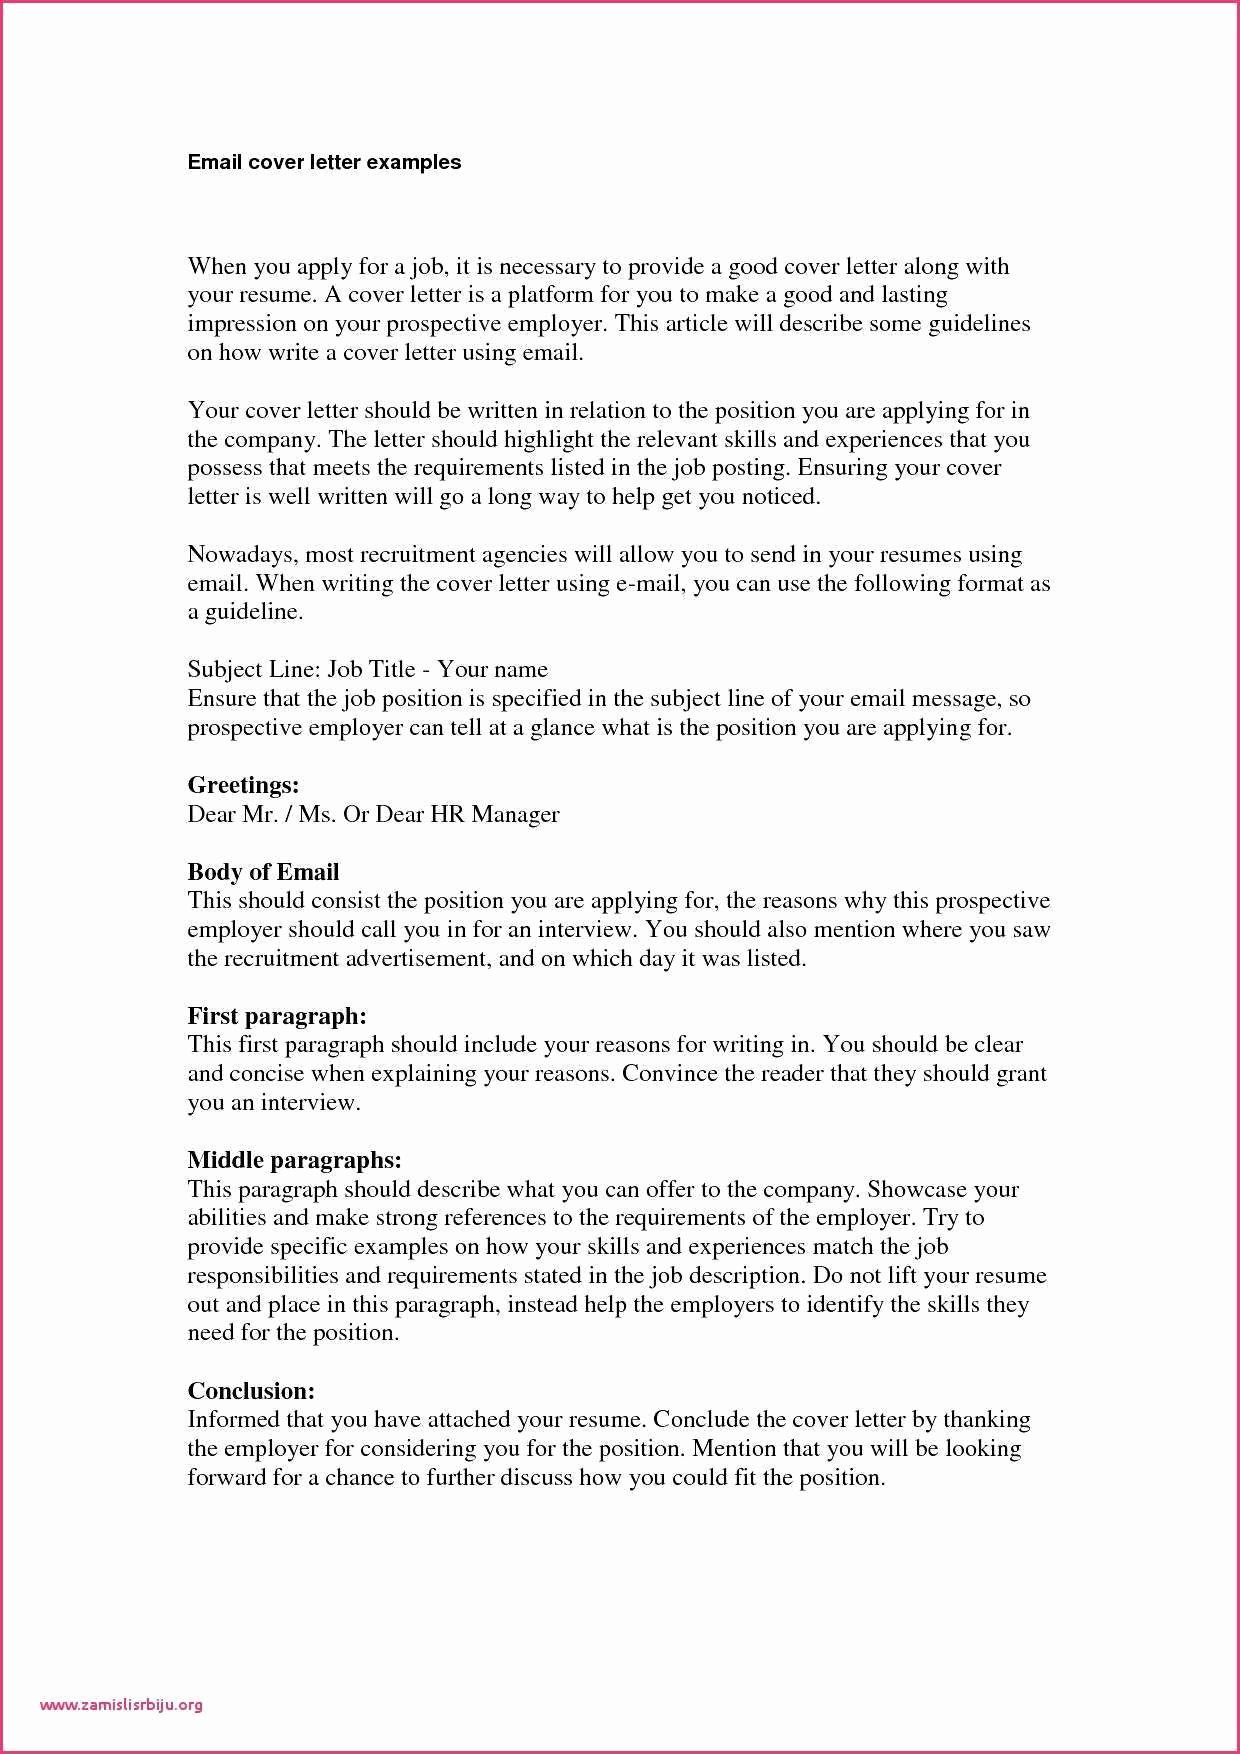 Letter Of Recommendation Subject Line Unique Business Letter format Reference Line Email Thank You